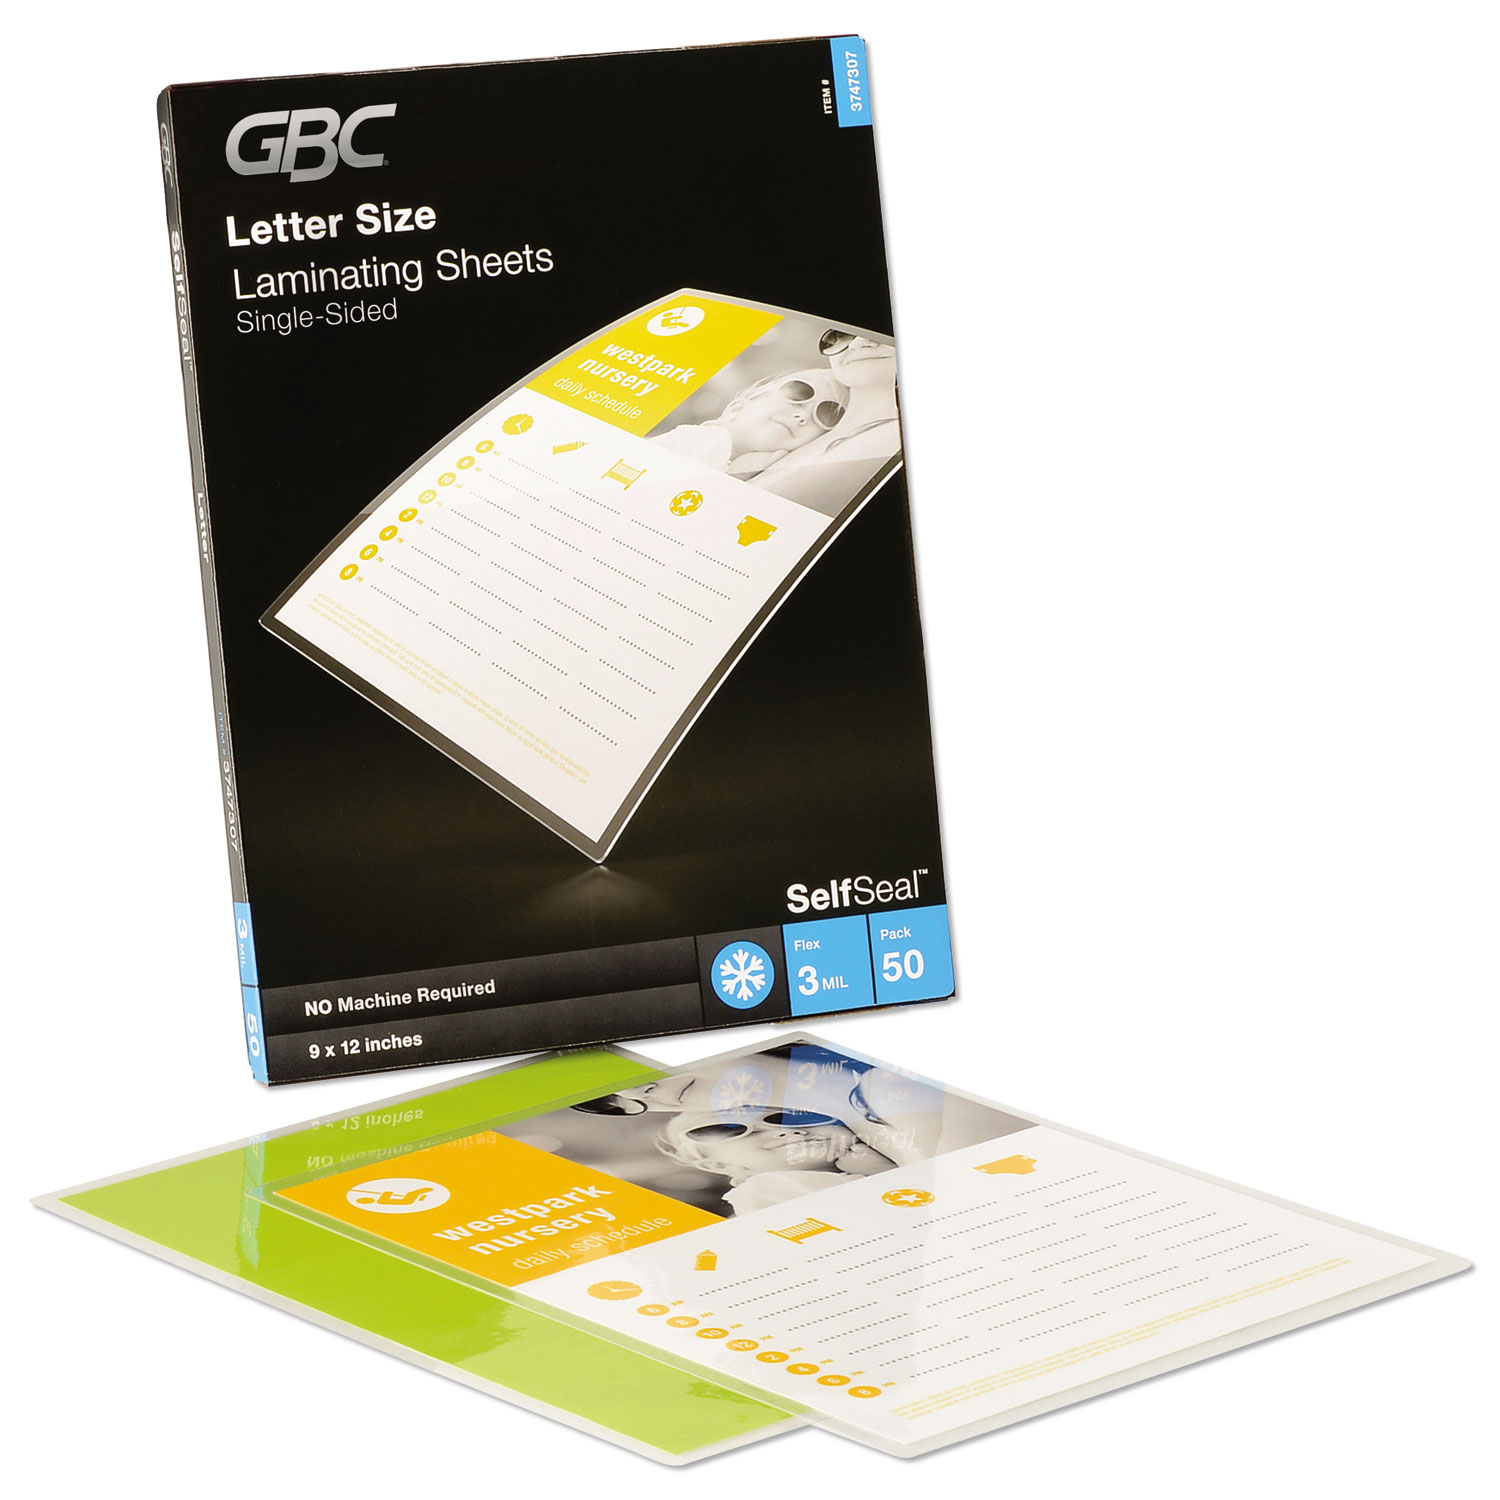 """SelfSeal Self-Adhesive Laminating Pouches and Single-Sided Sheets, 3 mil, 9"""" x 12"""", Gloss Clear, 50/Pack"""